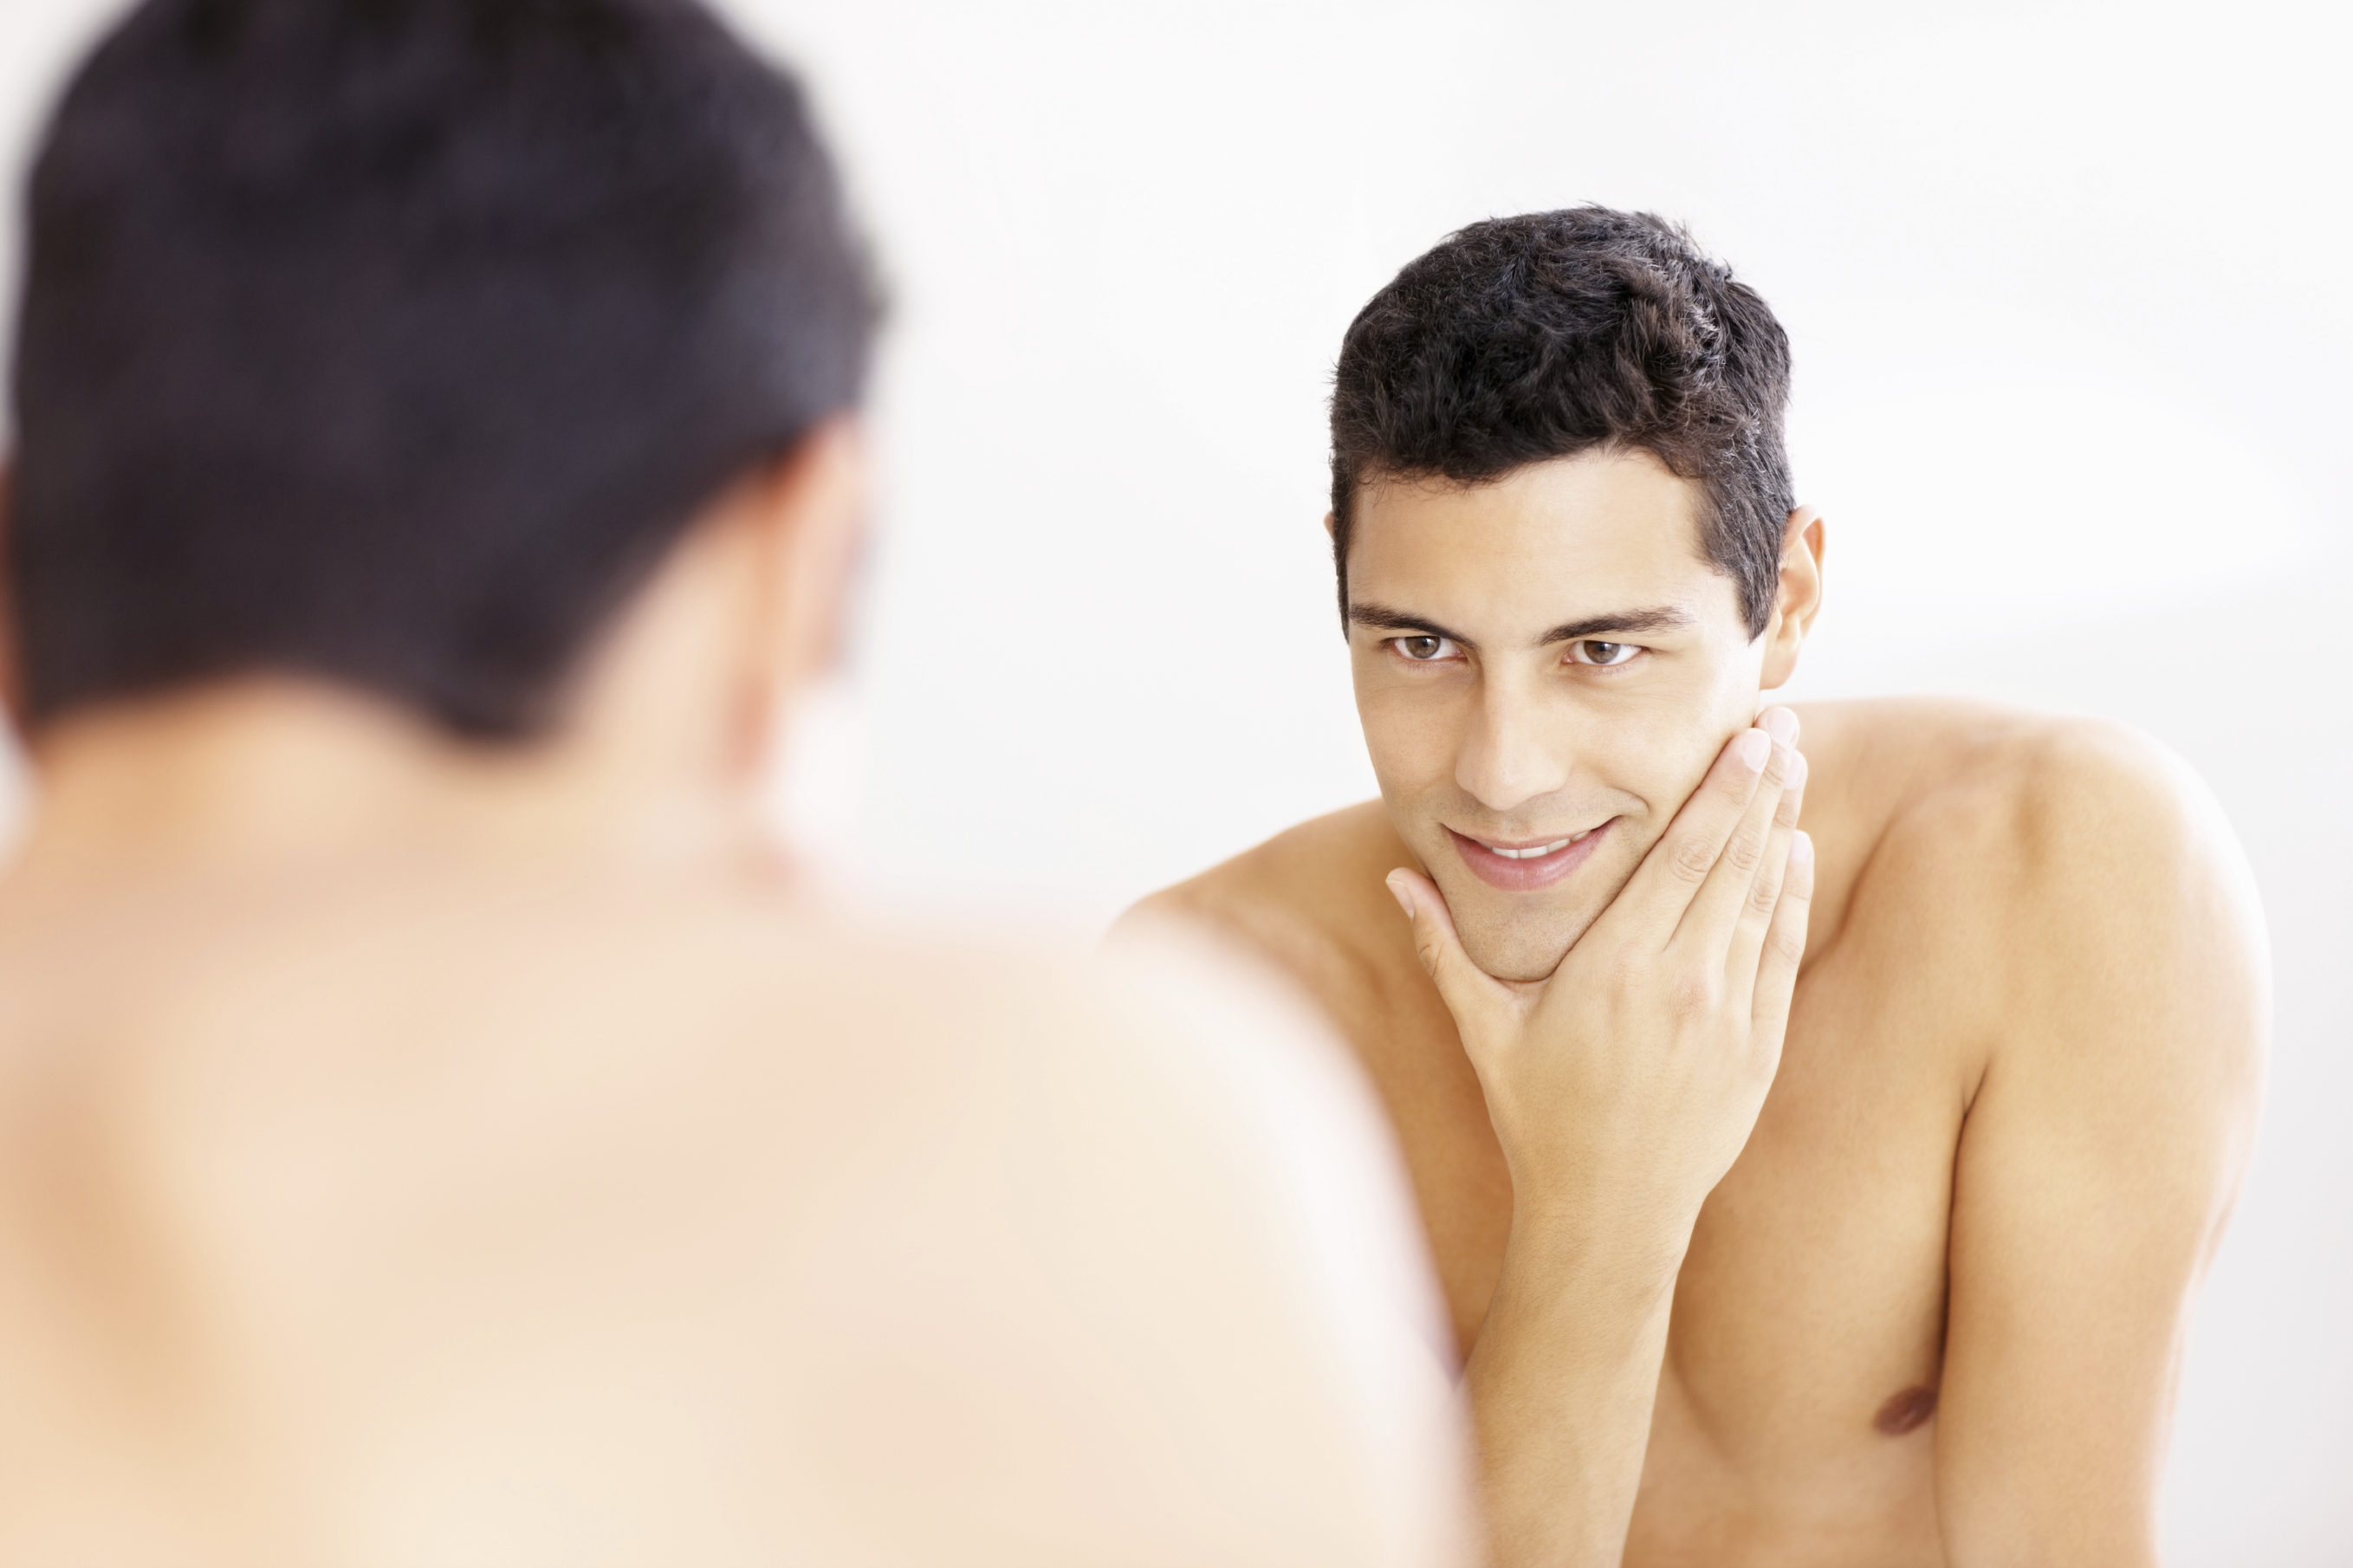 9 Tricks To Improve Your Look Instantly 2014: Shave After Shower